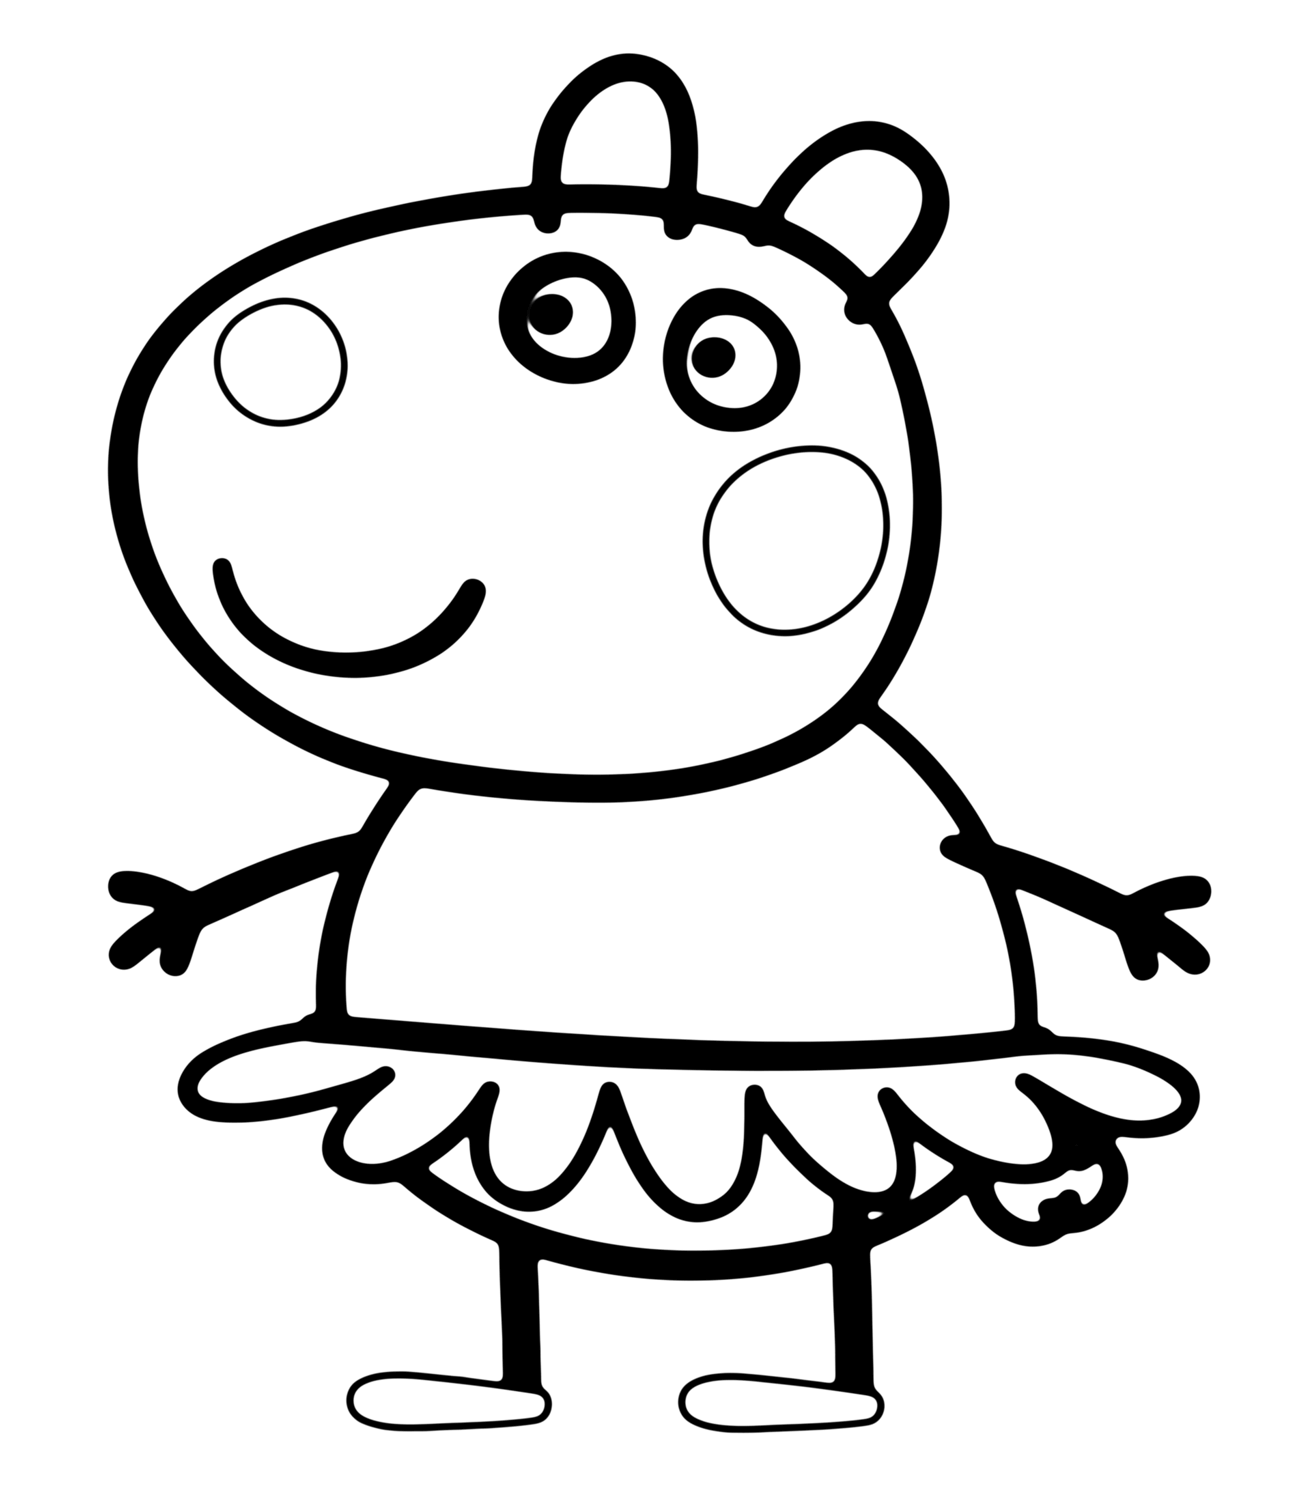 peppa pig pictures for colouring peppa pig coloring pages free coloring pages pig pictures colouring for pig peppa